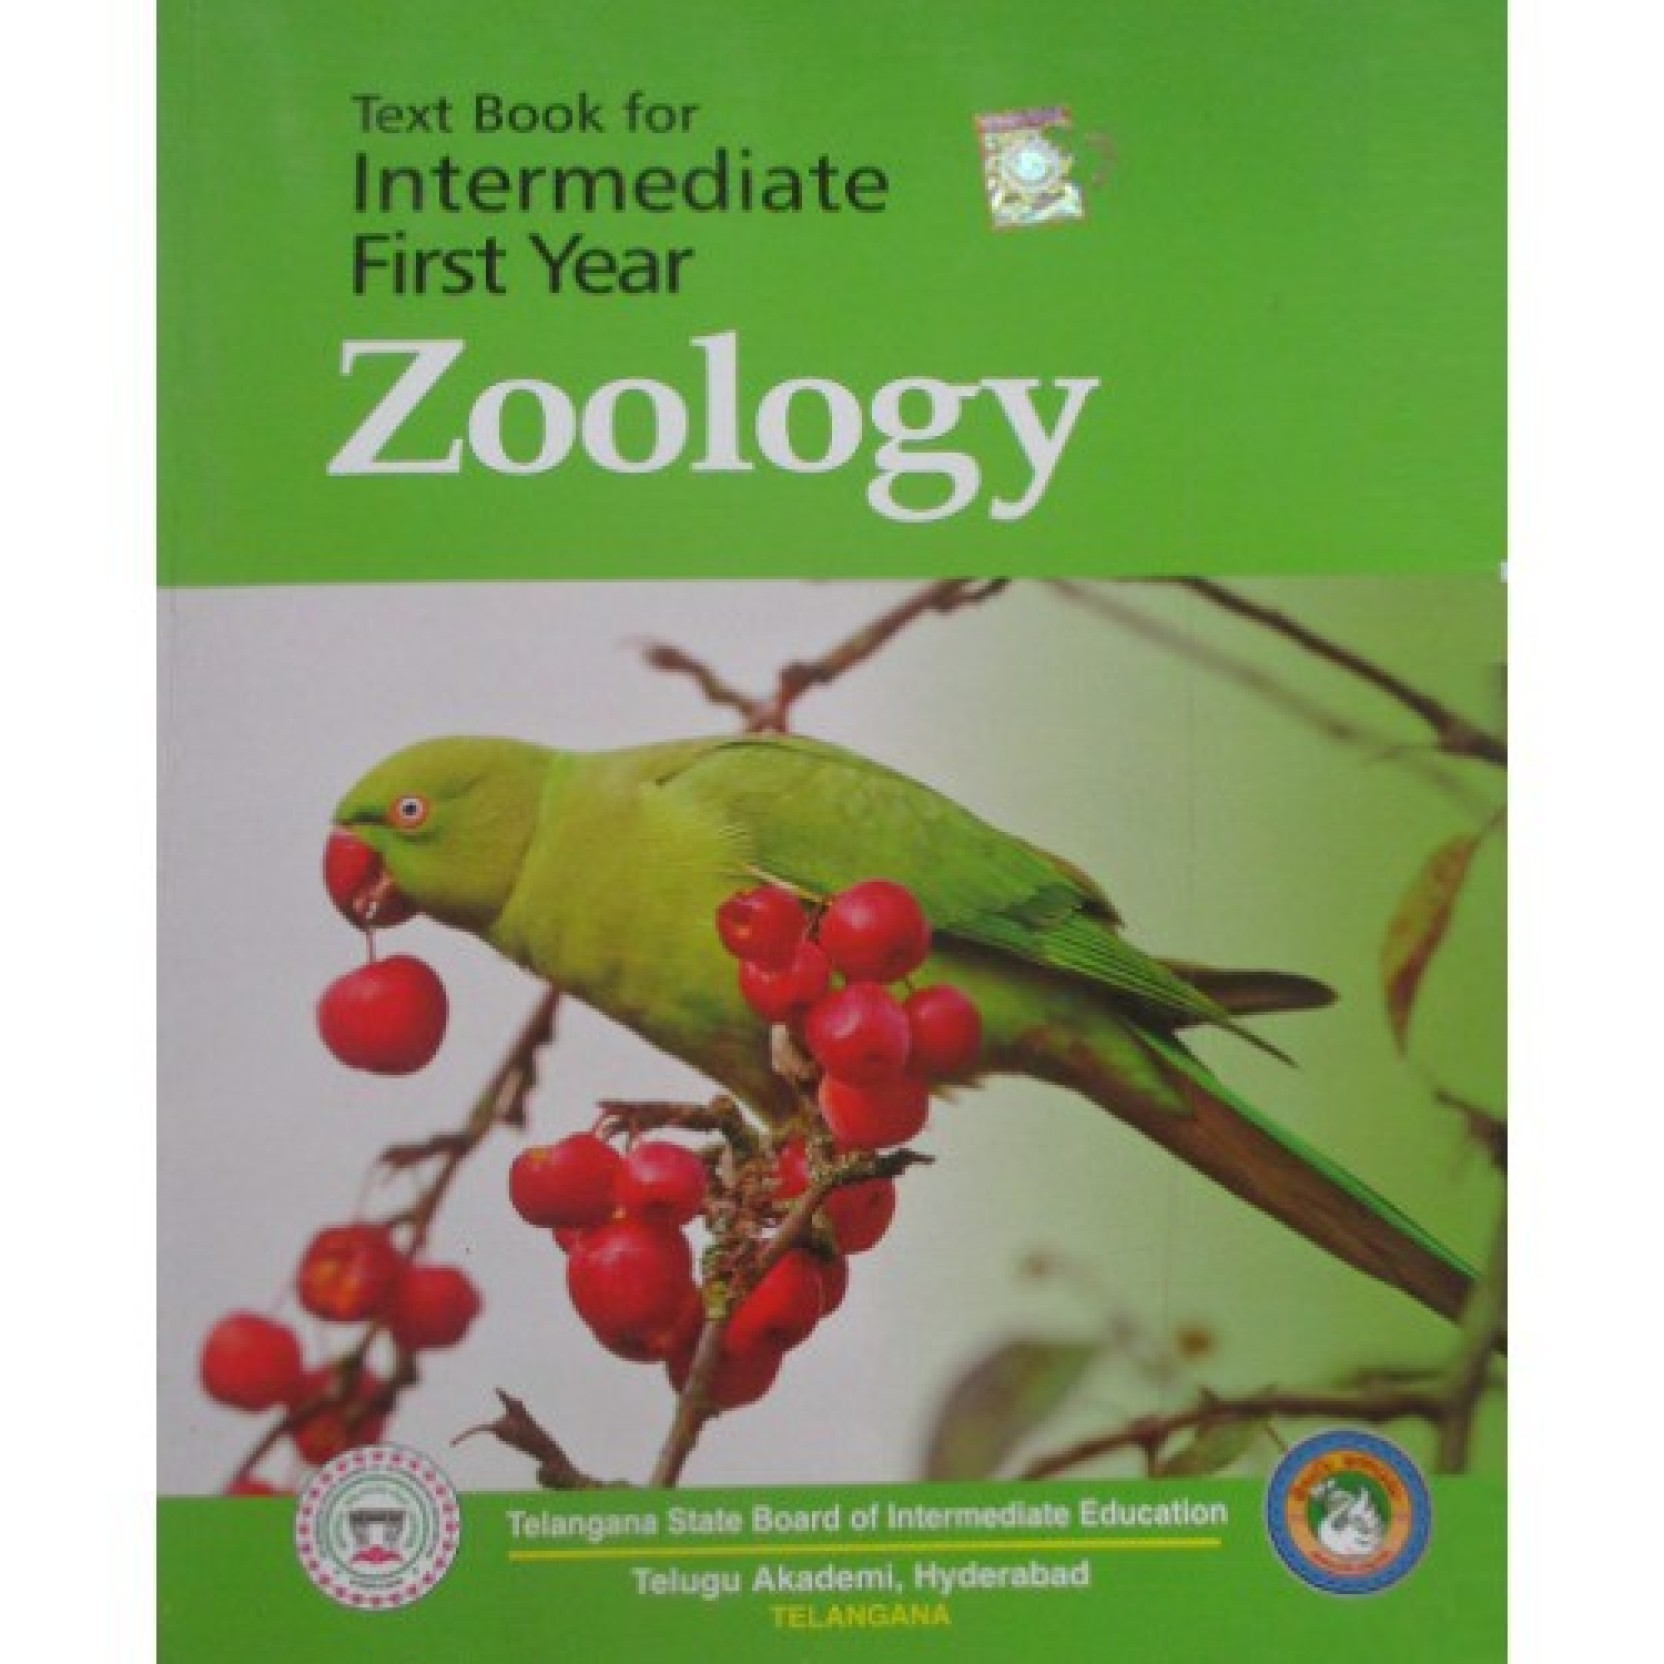 TEXT BOOK FOR INTERMEDIATE FIRST YEAR ZOOLOGY (E/M): Buy TEXT BOOK